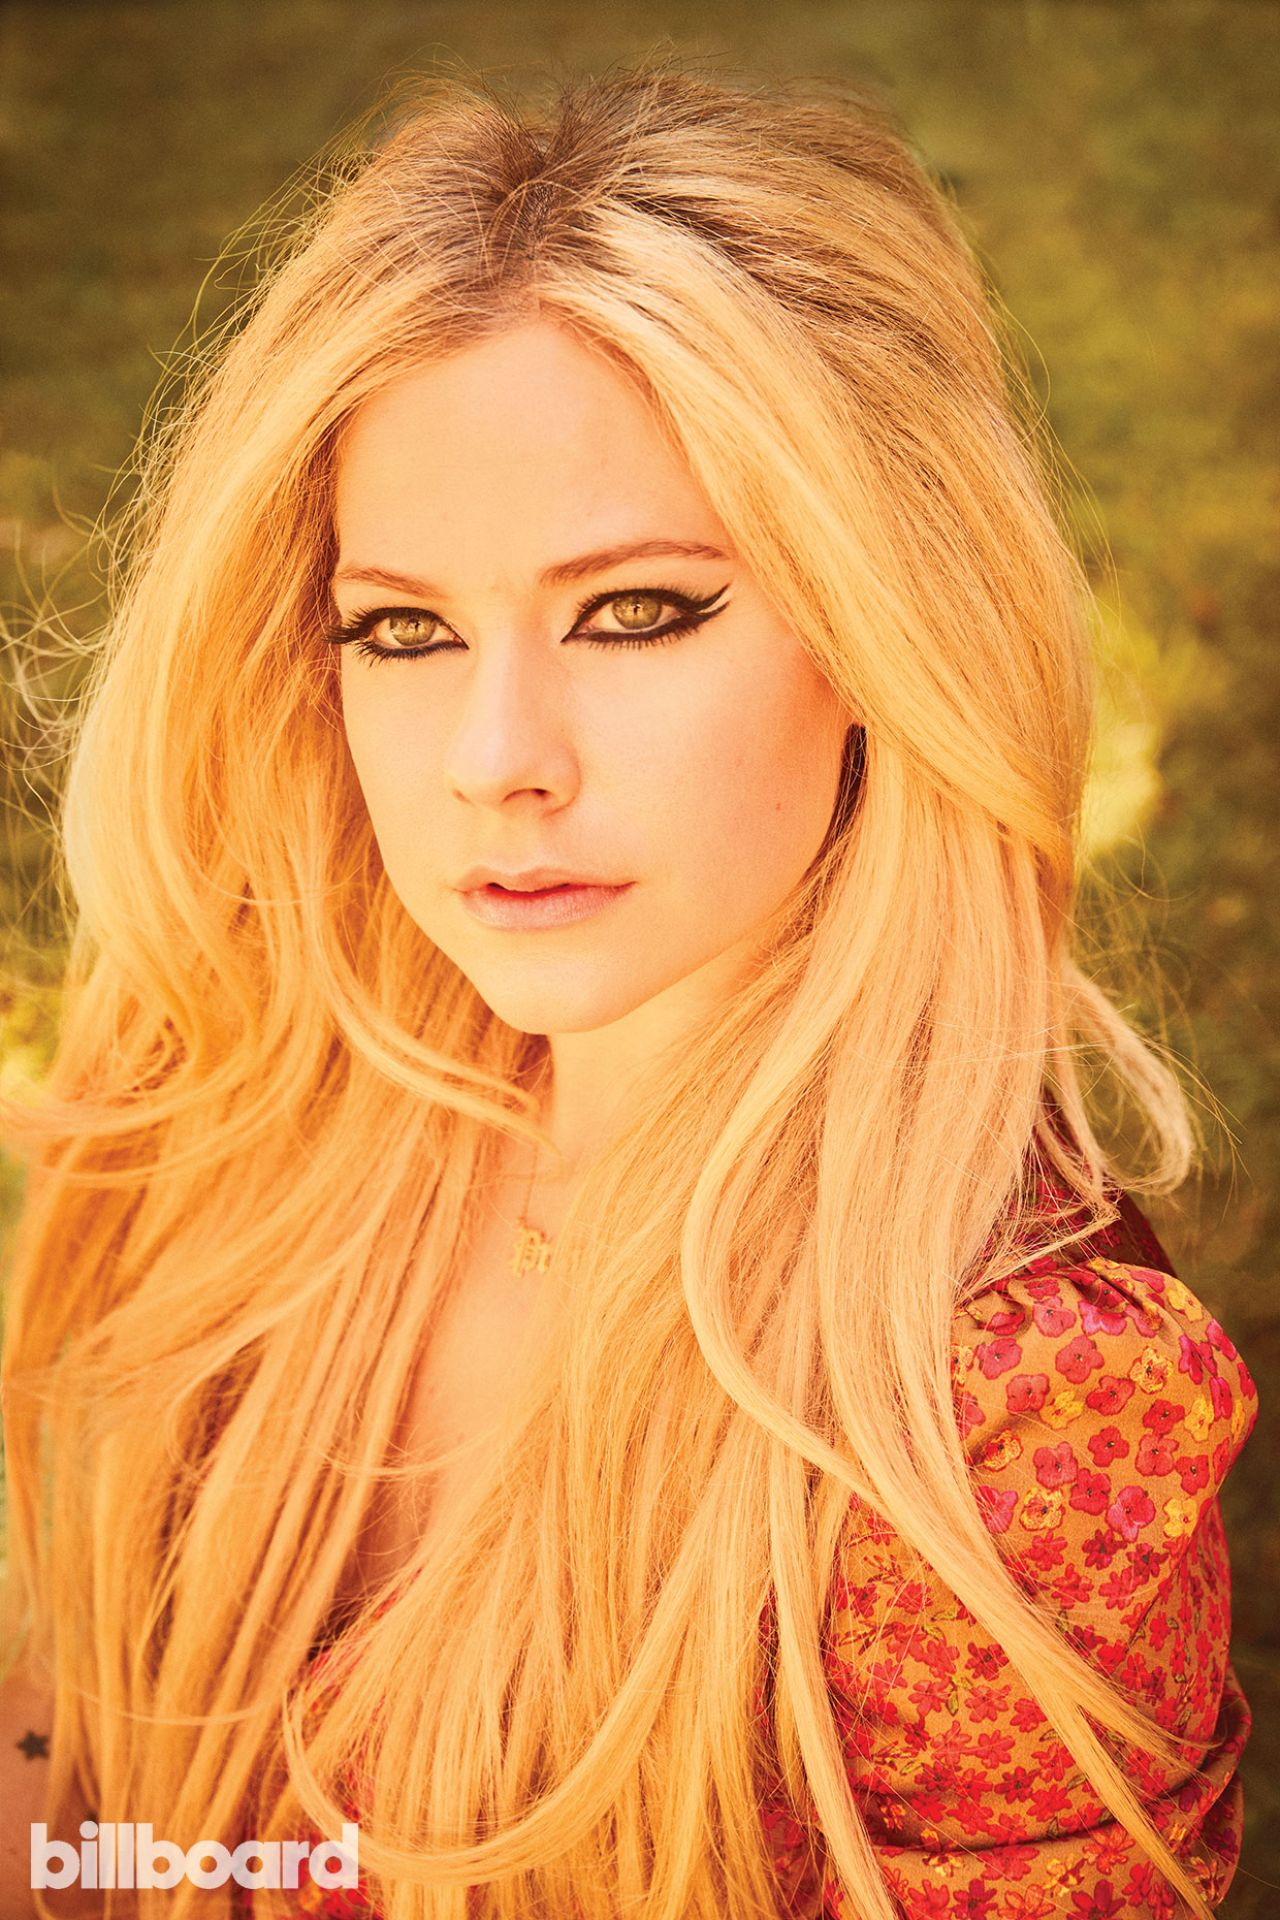 https://celebmafia.com/wp-content/uploads/2018/10/avril-lavigne-billboard-magazine-10-20-2018-7.jpg